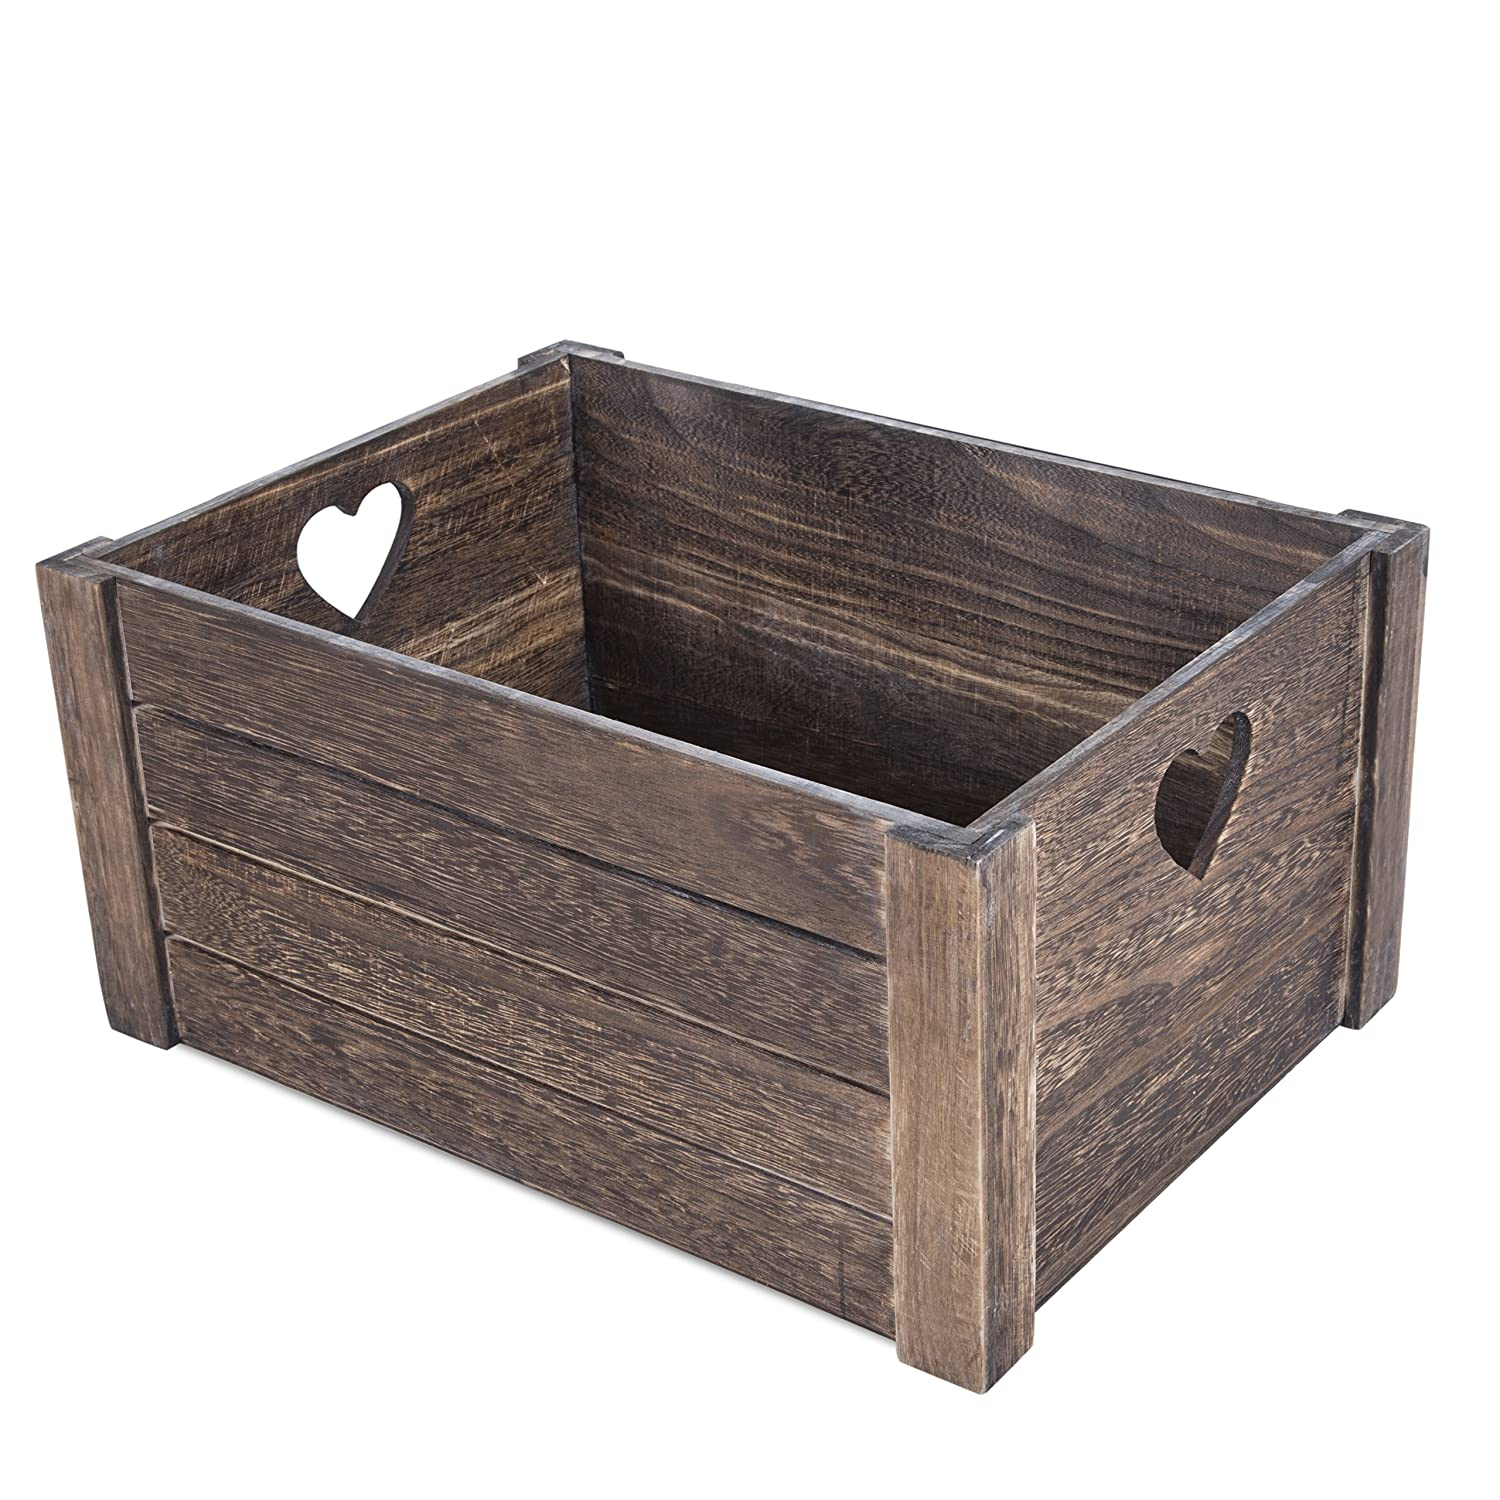 Brown Heart Shaped Cut Wooden Crates Display Plants Fruits Storage Gift Hamper (3, Large) Basic House